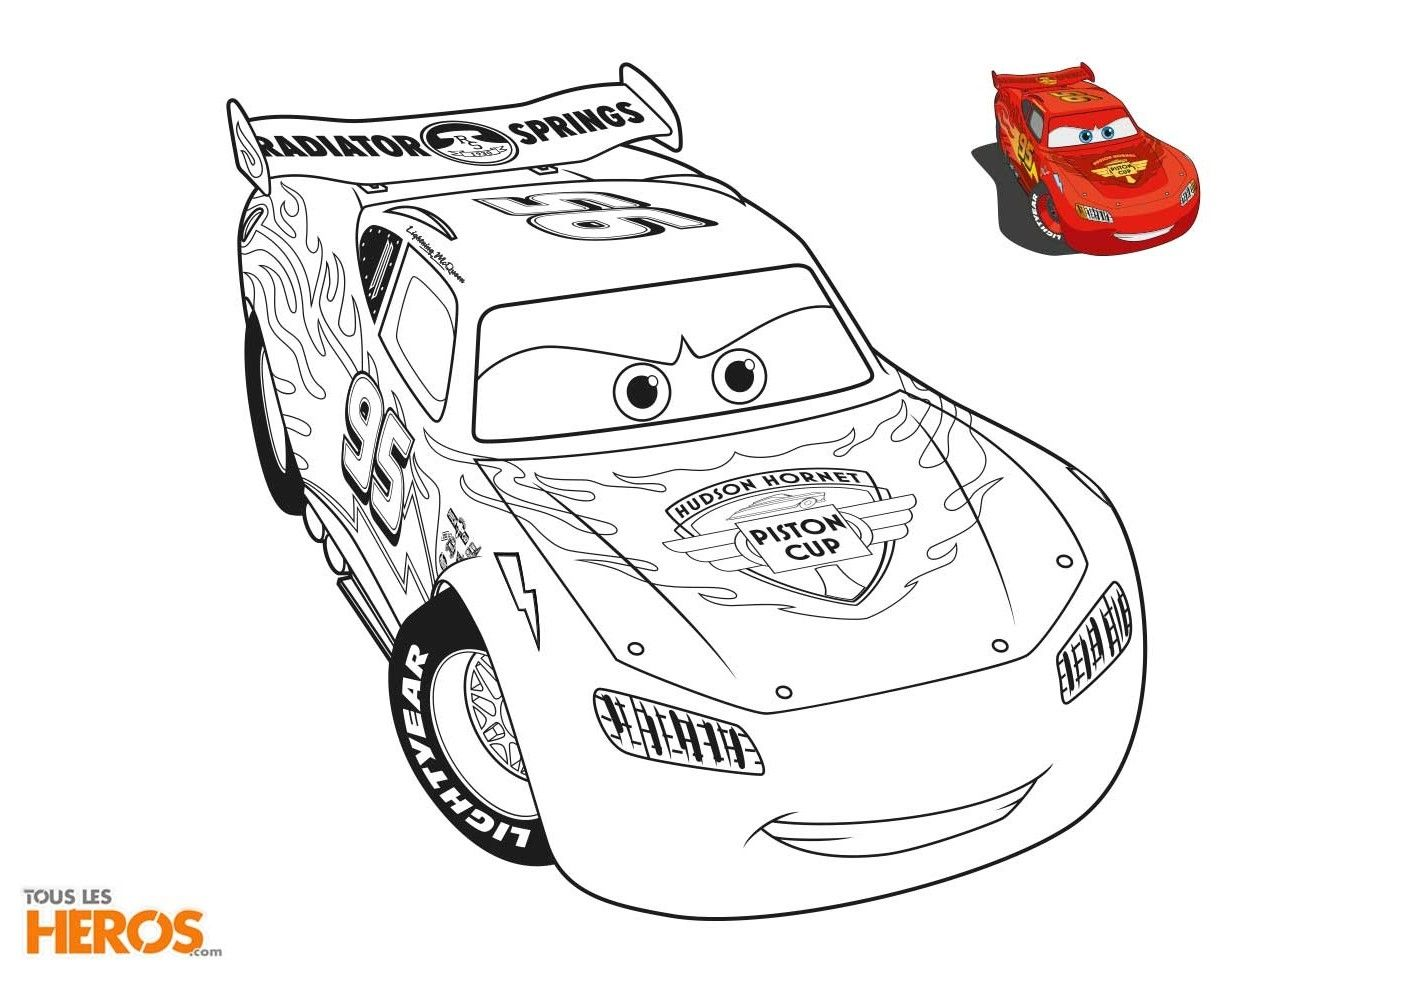 Coloriage Flash Mcqueen Et Martin A Imprimer Gembl Mega Coloring Pages Coloriage Flash Mcqueen Cars Coloriage Coloriage Coloriage Spiderman